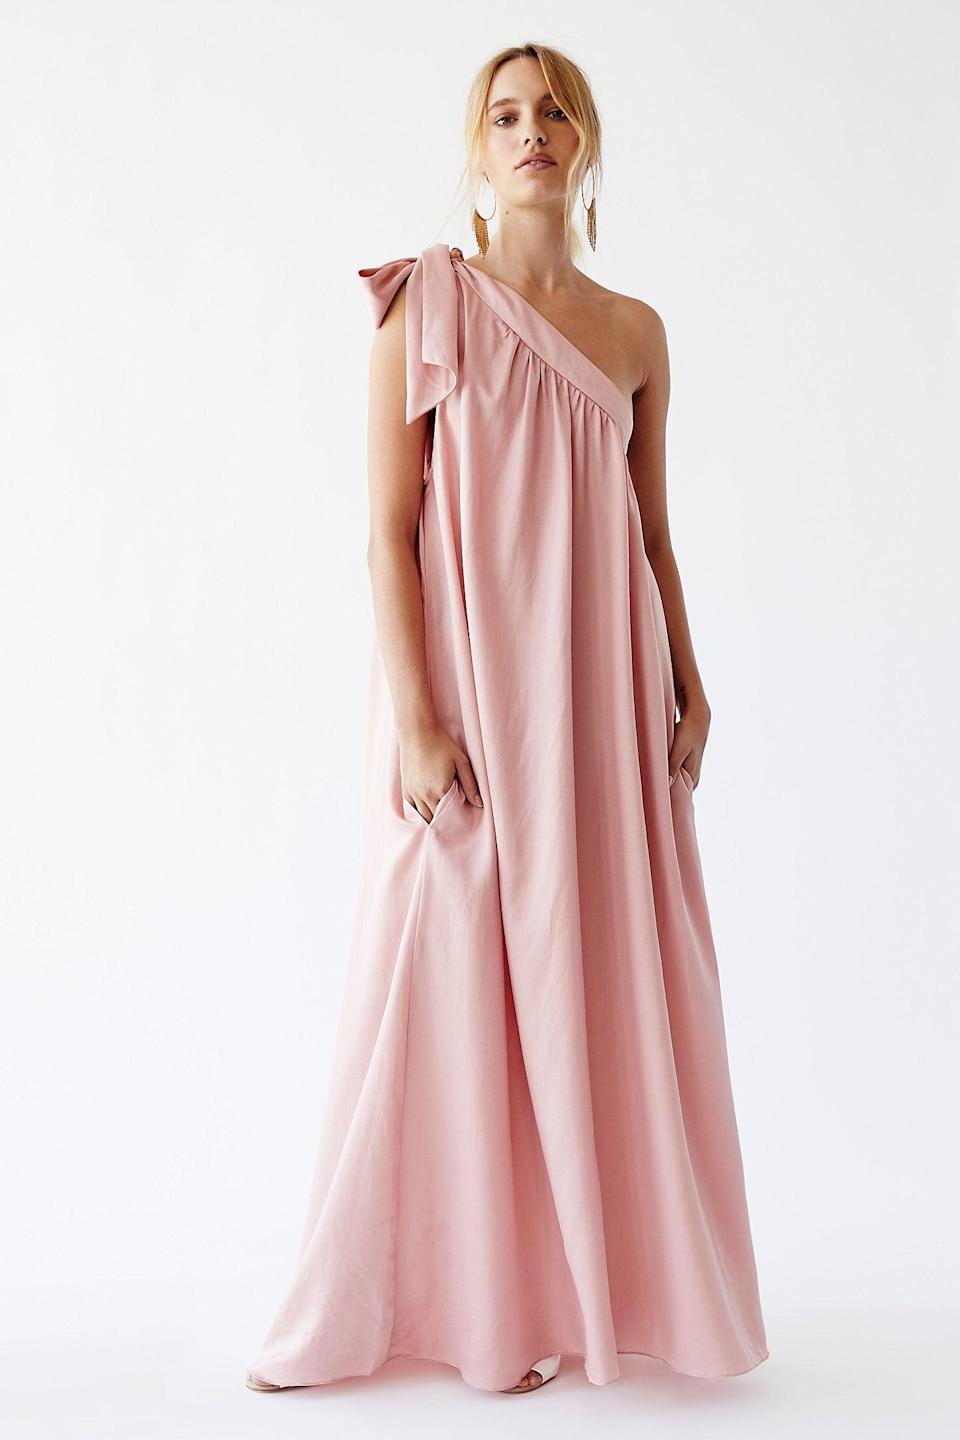 """<h2>Free People Soa Dress In Light Pink</h2><br>Single-shoulder frocks seem to be everywhere right now — frequently occurring in the type of free-flowing, floor-skimming silhouette that we've grown very accustomed to during quarantine. With a silky fabrication (made from eco-friendly cupro, a cotton byproduct) and a cheeky oversized bow, this light pink dress is perfect for your carefree nuptials. <br><br><em>Shop <strong><a href=""""http://freepeople.com"""" rel=""""nofollow noopener"""" target=""""_blank"""" data-ylk=""""slk:Free People"""" class=""""link rapid-noclick-resp"""">Free People</a></strong></em><br><br><strong>Free People</strong> Soa Dress, $, available at <a href=""""https://go.skimresources.com/?id=30283X879131&url=https%3A%2F%2Fwww.freepeople.com%2Fshop%2Fsoa-dress%2F%3Fcategory%3Dmaxi-dresses%26color%3D066%26type%3DREGULAR%26quantity%3D1"""" rel=""""nofollow noopener"""" target=""""_blank"""" data-ylk=""""slk:Free People"""" class=""""link rapid-noclick-resp"""">Free People</a>"""